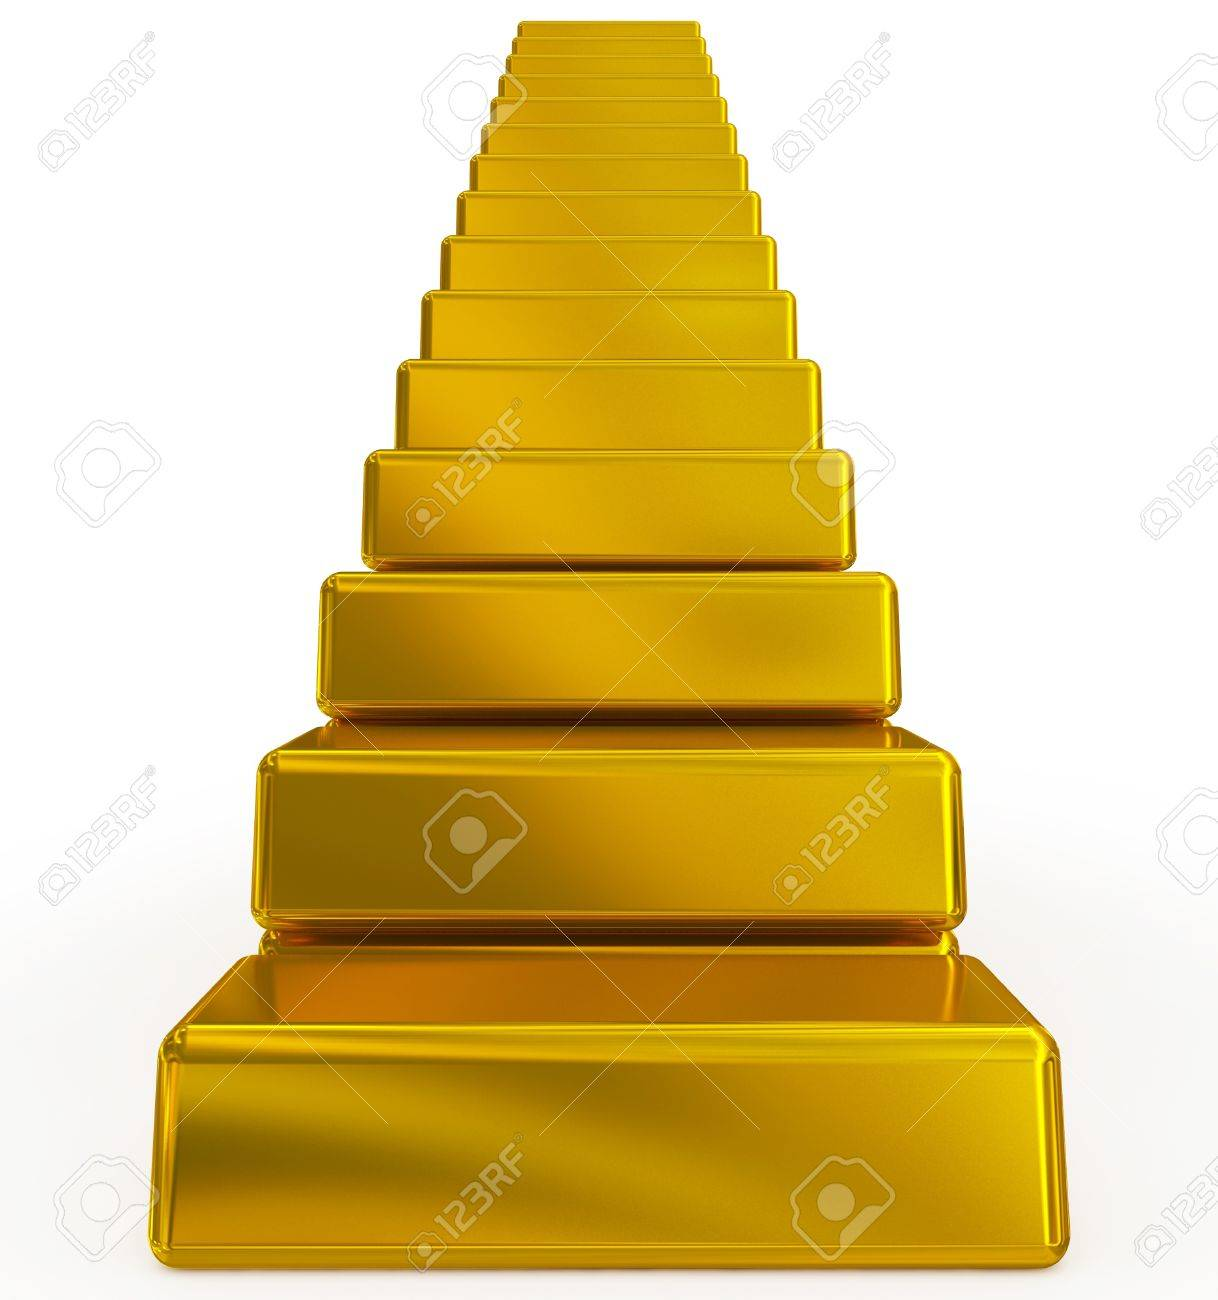 gold bars stairs - 17774923